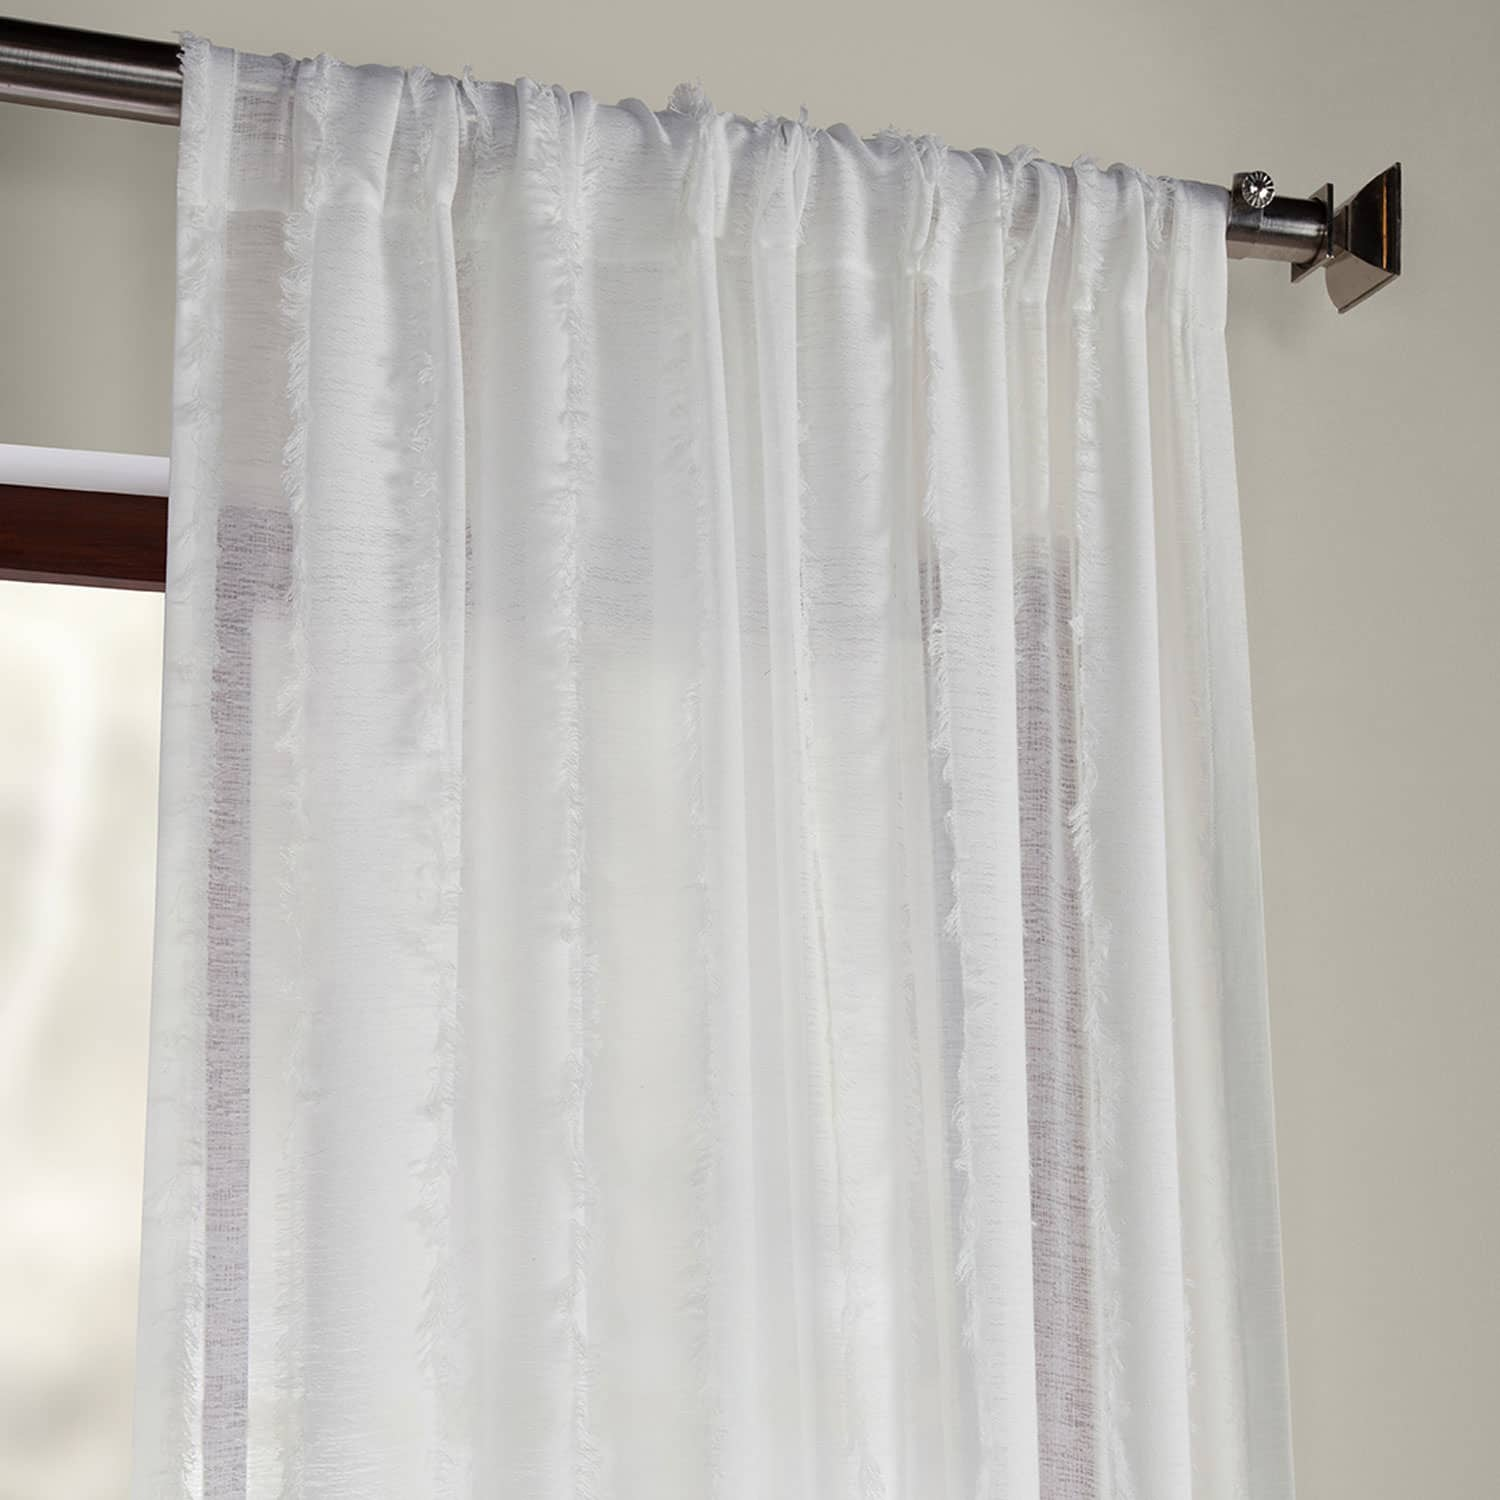 Antares White Patterned Linen Sheer Curtain